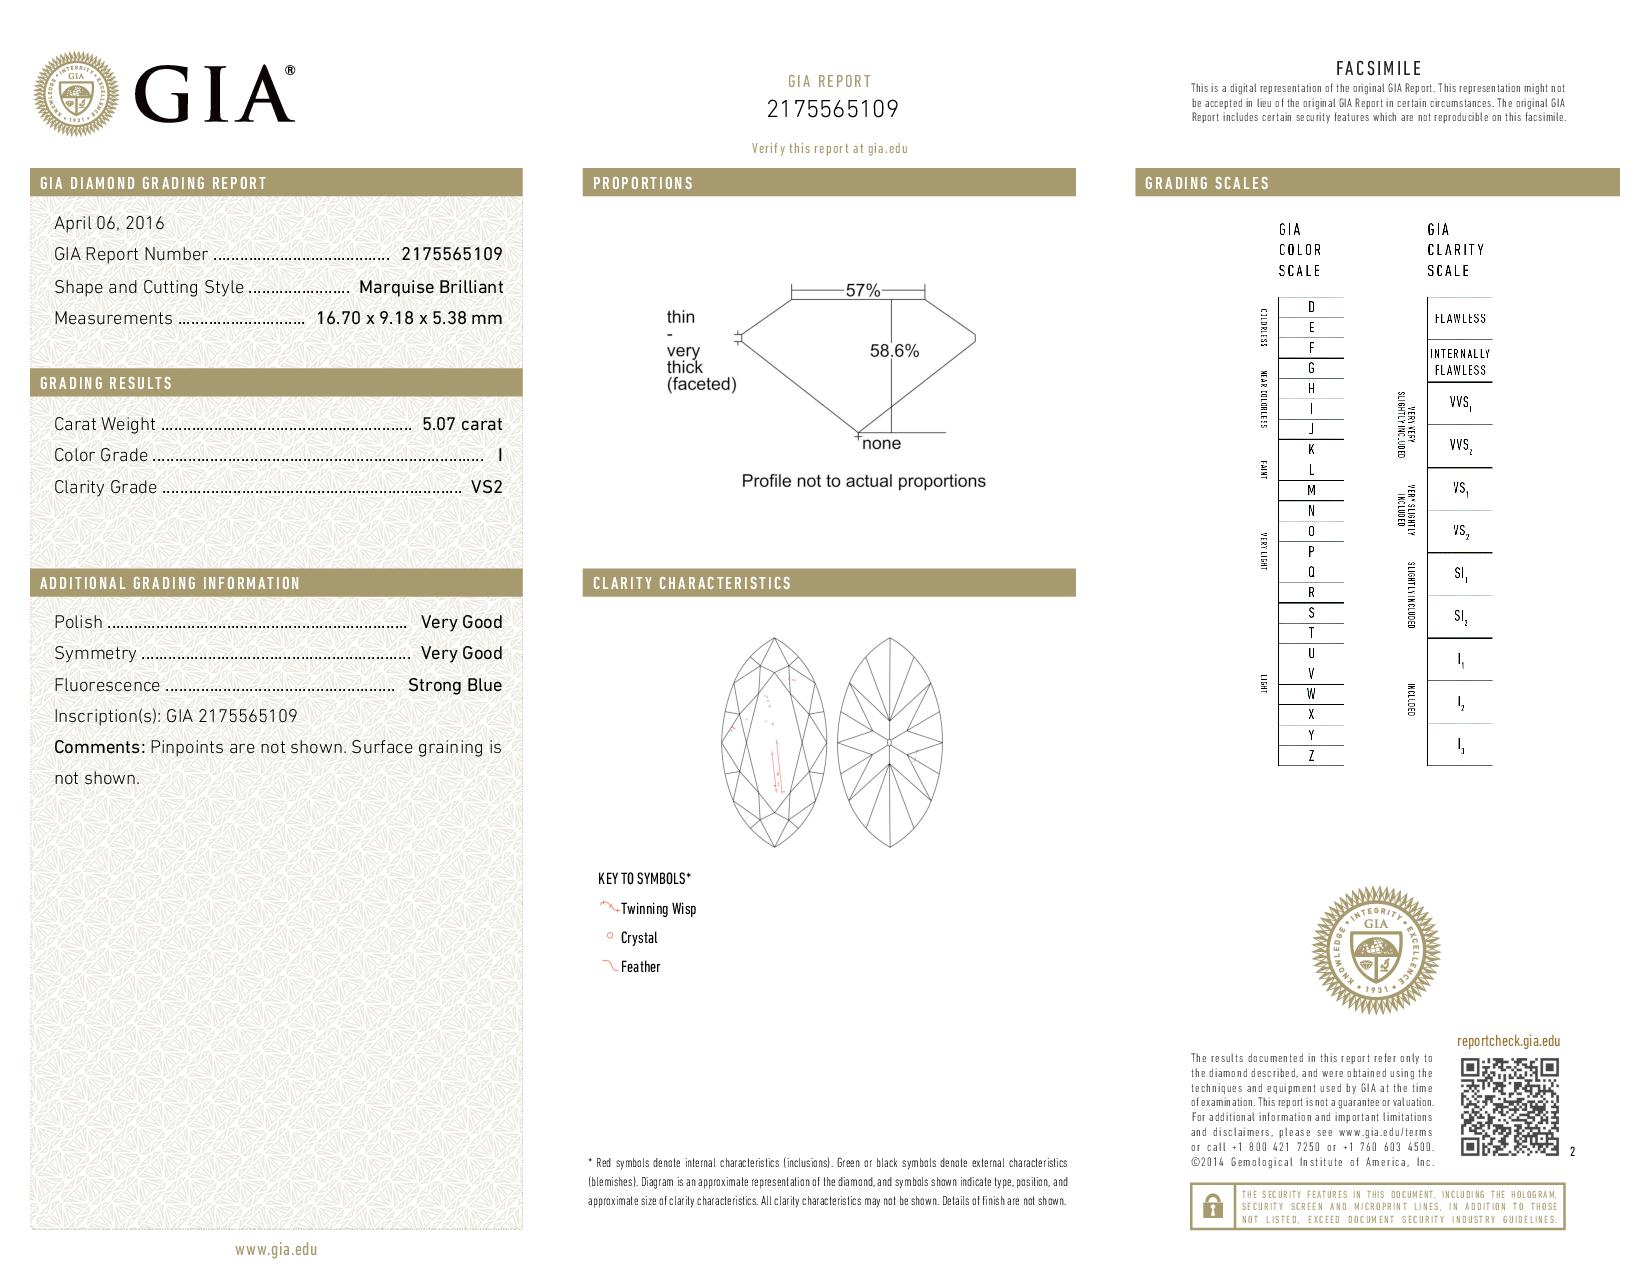 This is a 5.03 carat marquise shape, H color, VS2 clarity natural diamond accompanied by a GIA grading report.